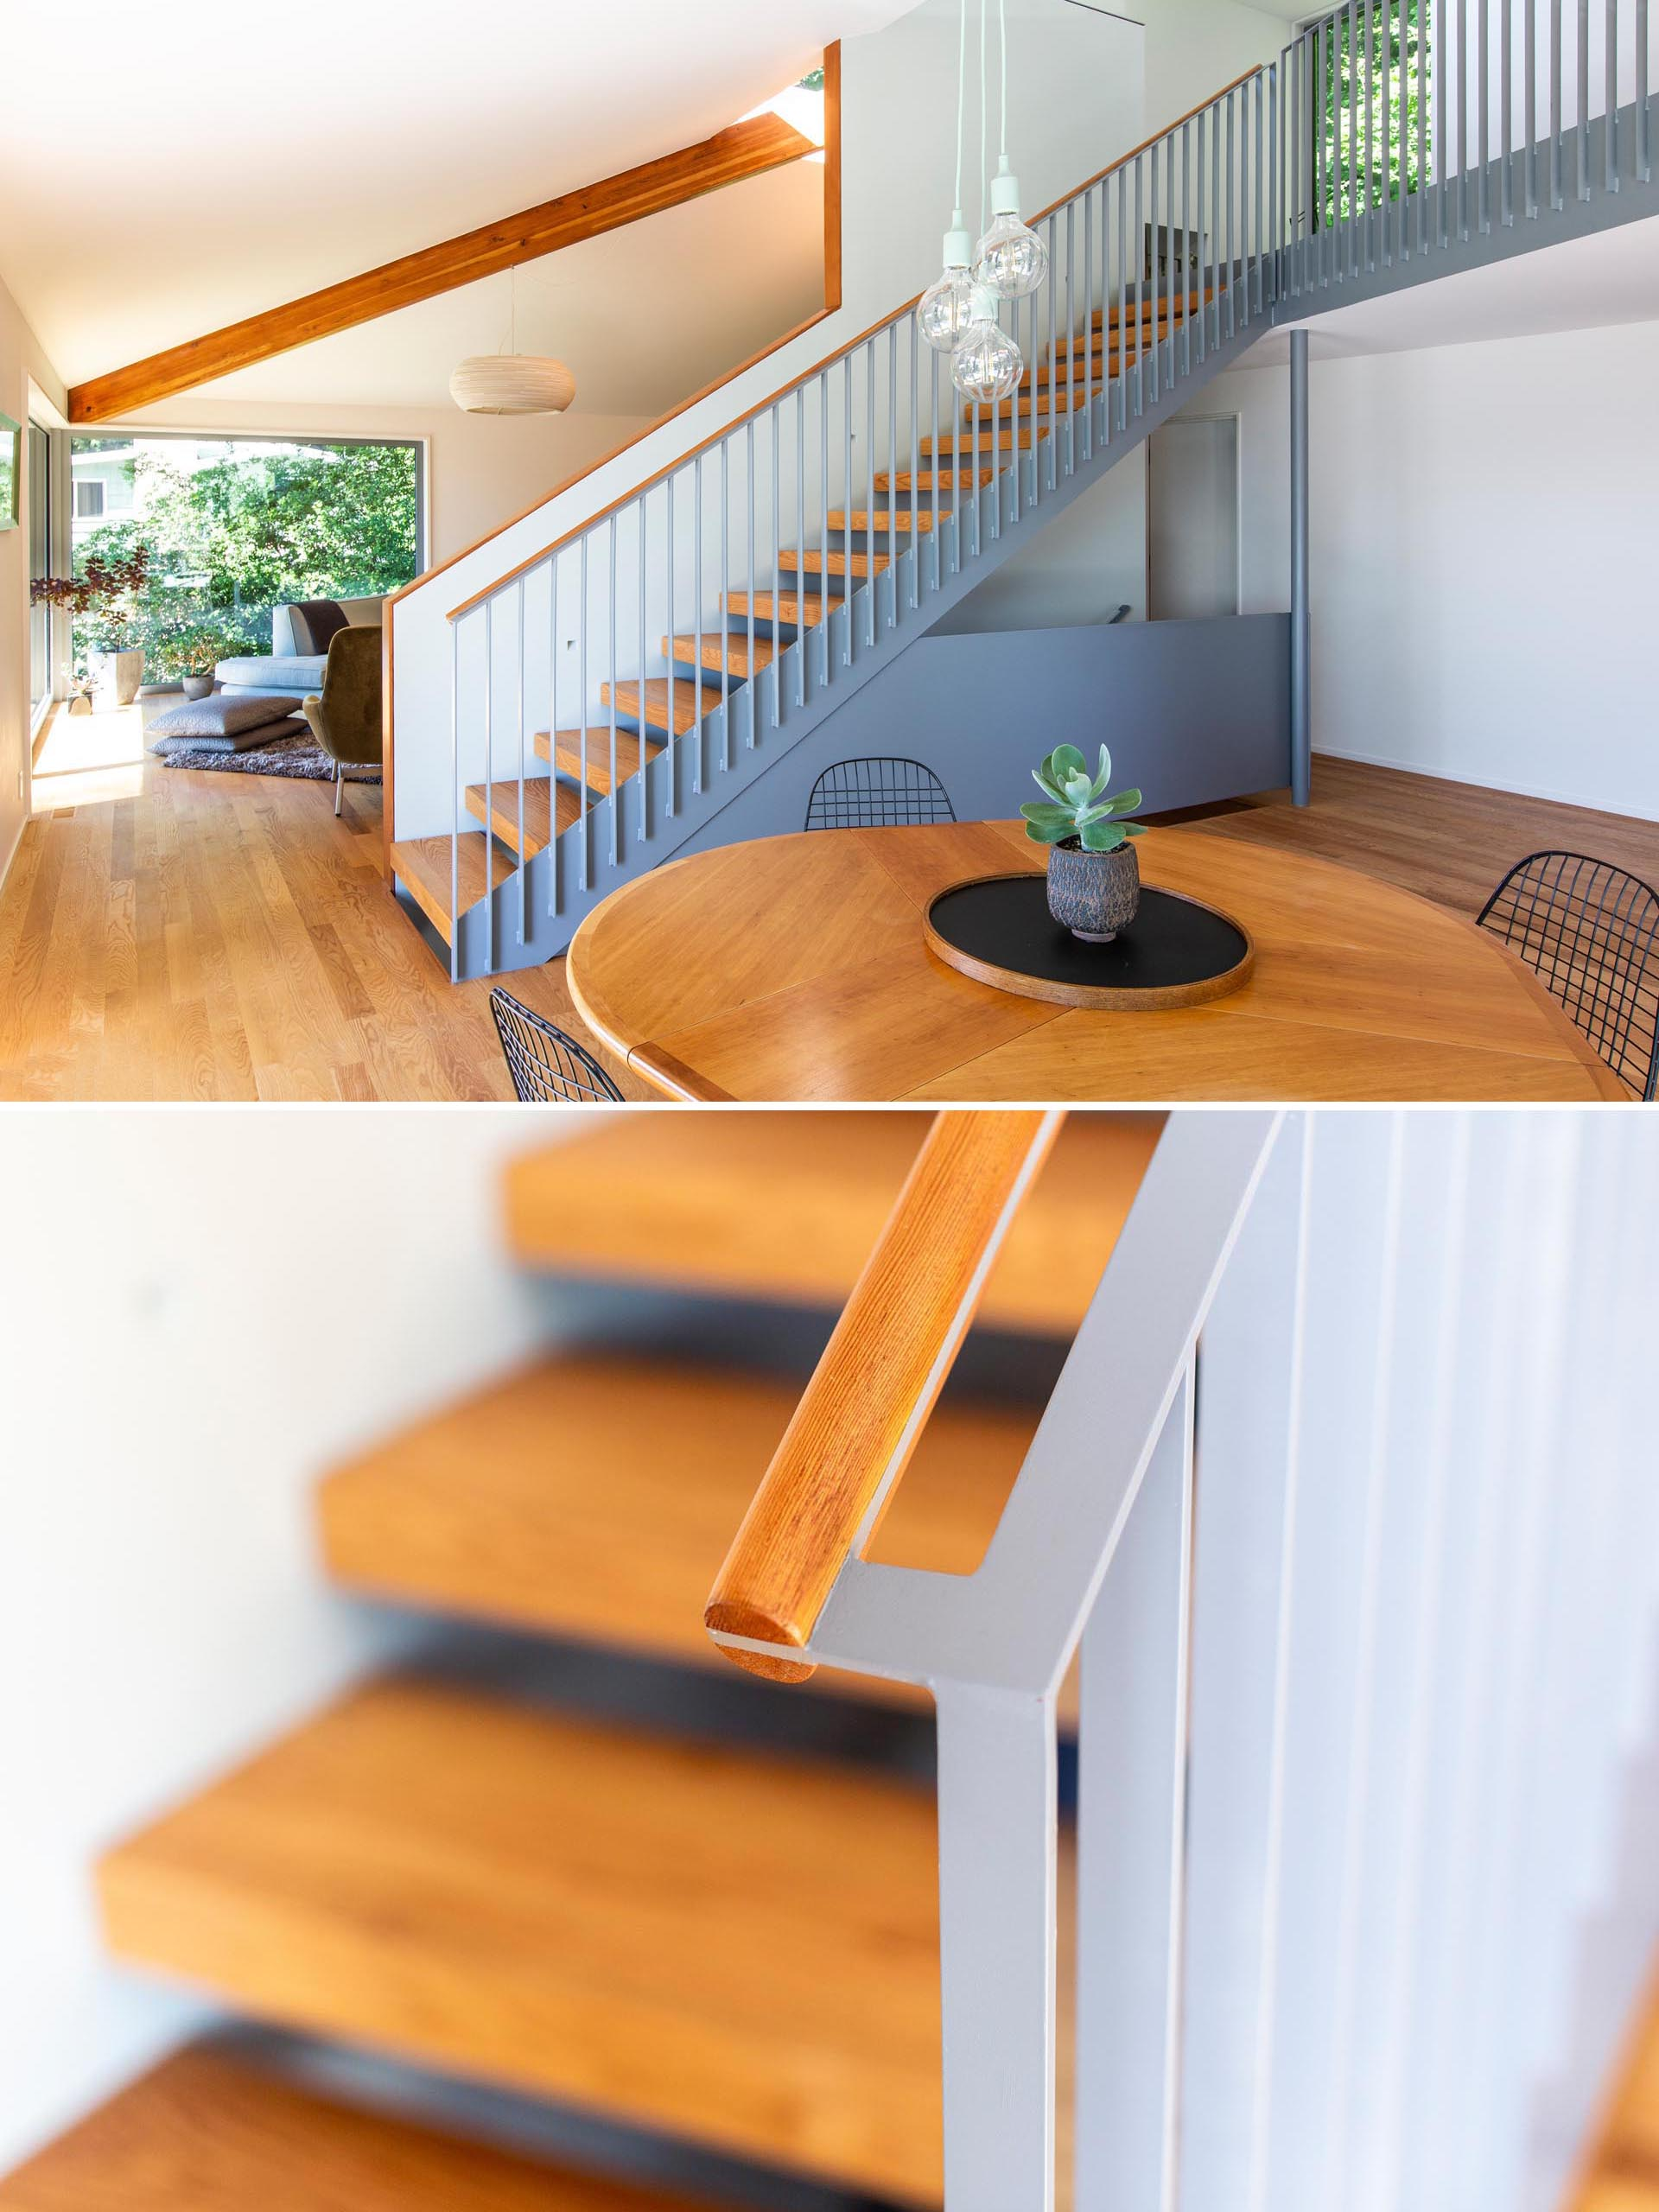 Matte gray and wood stairs connect the main level of this modern home with the upper floor.